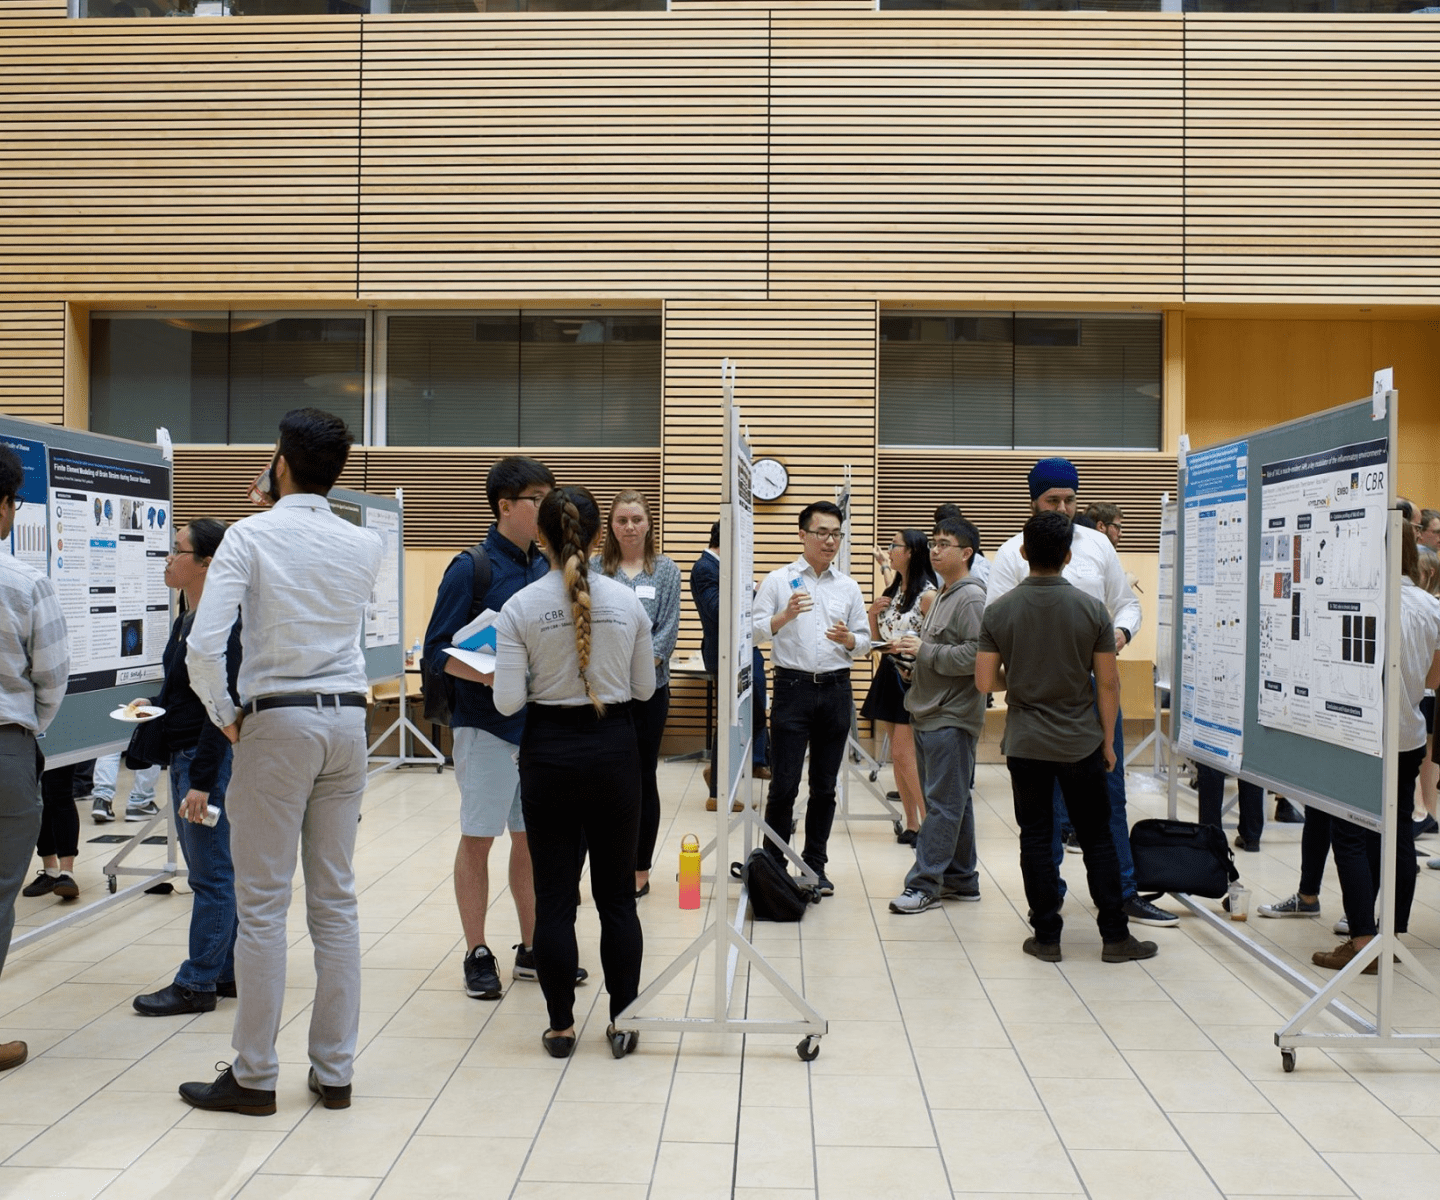 3.	Poster session at the CBR Research Day 2019